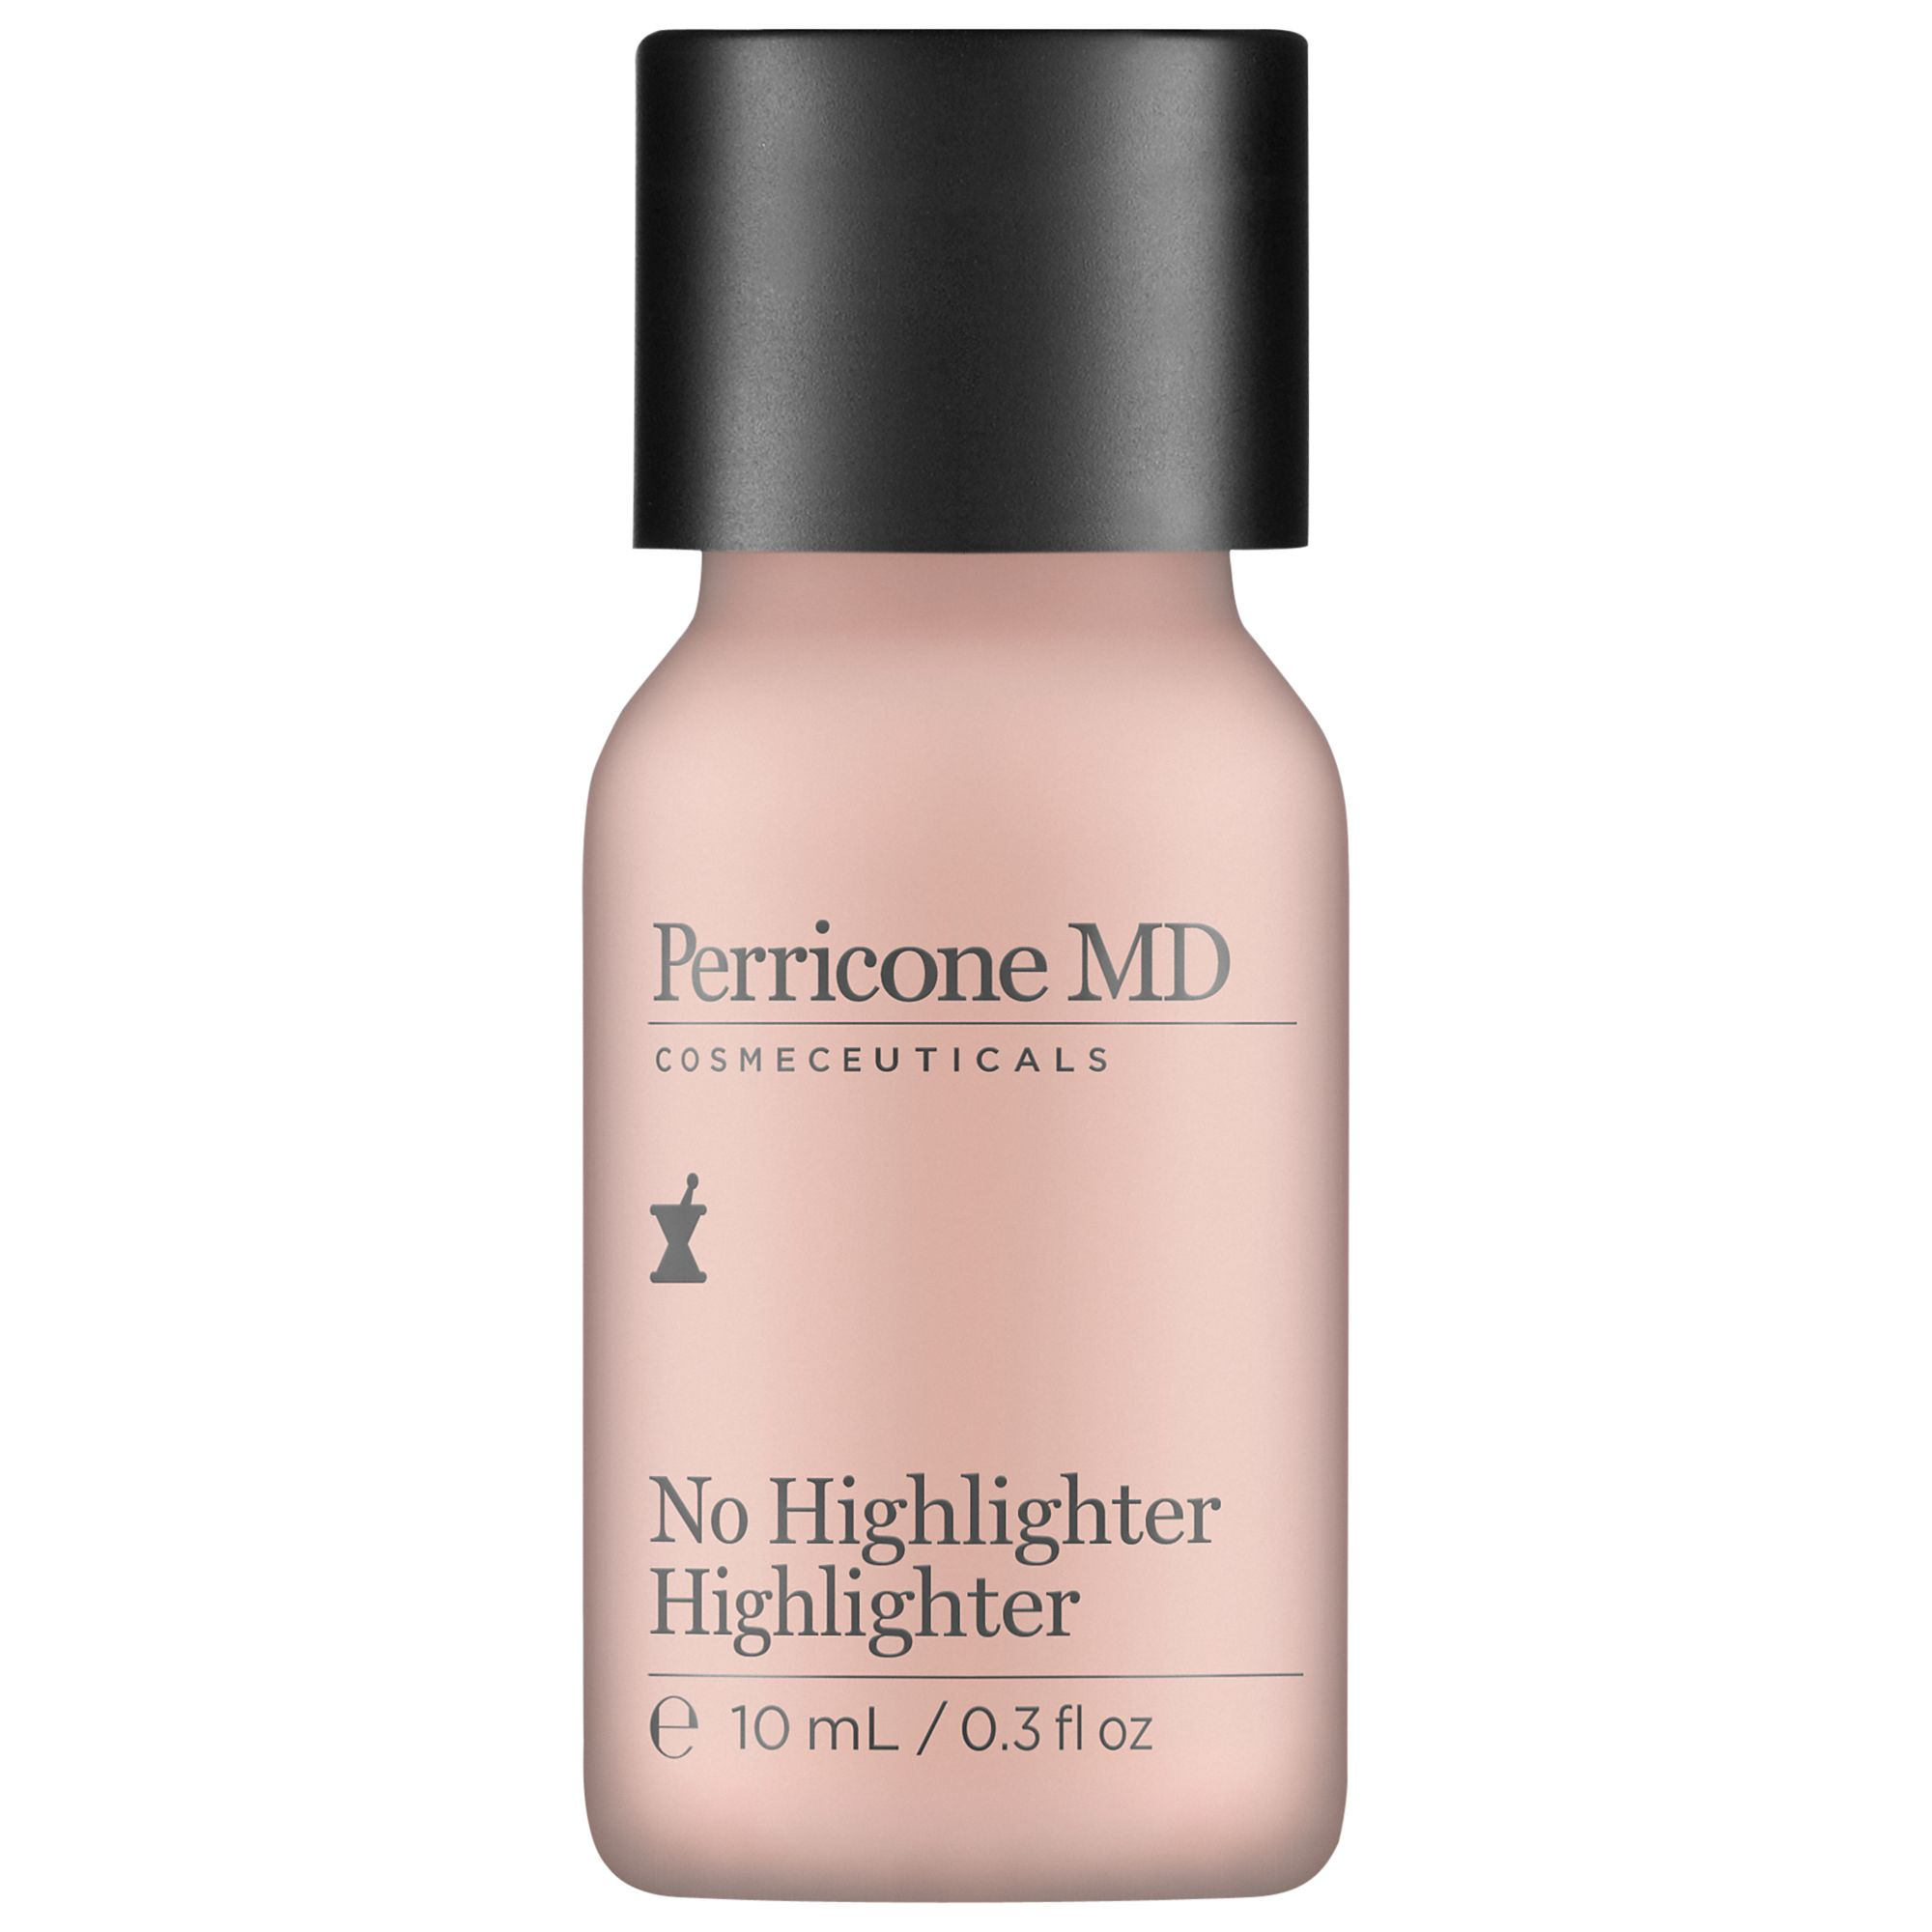 Perricone MD Perricone MD No Highlighter Highlighter, 10ml